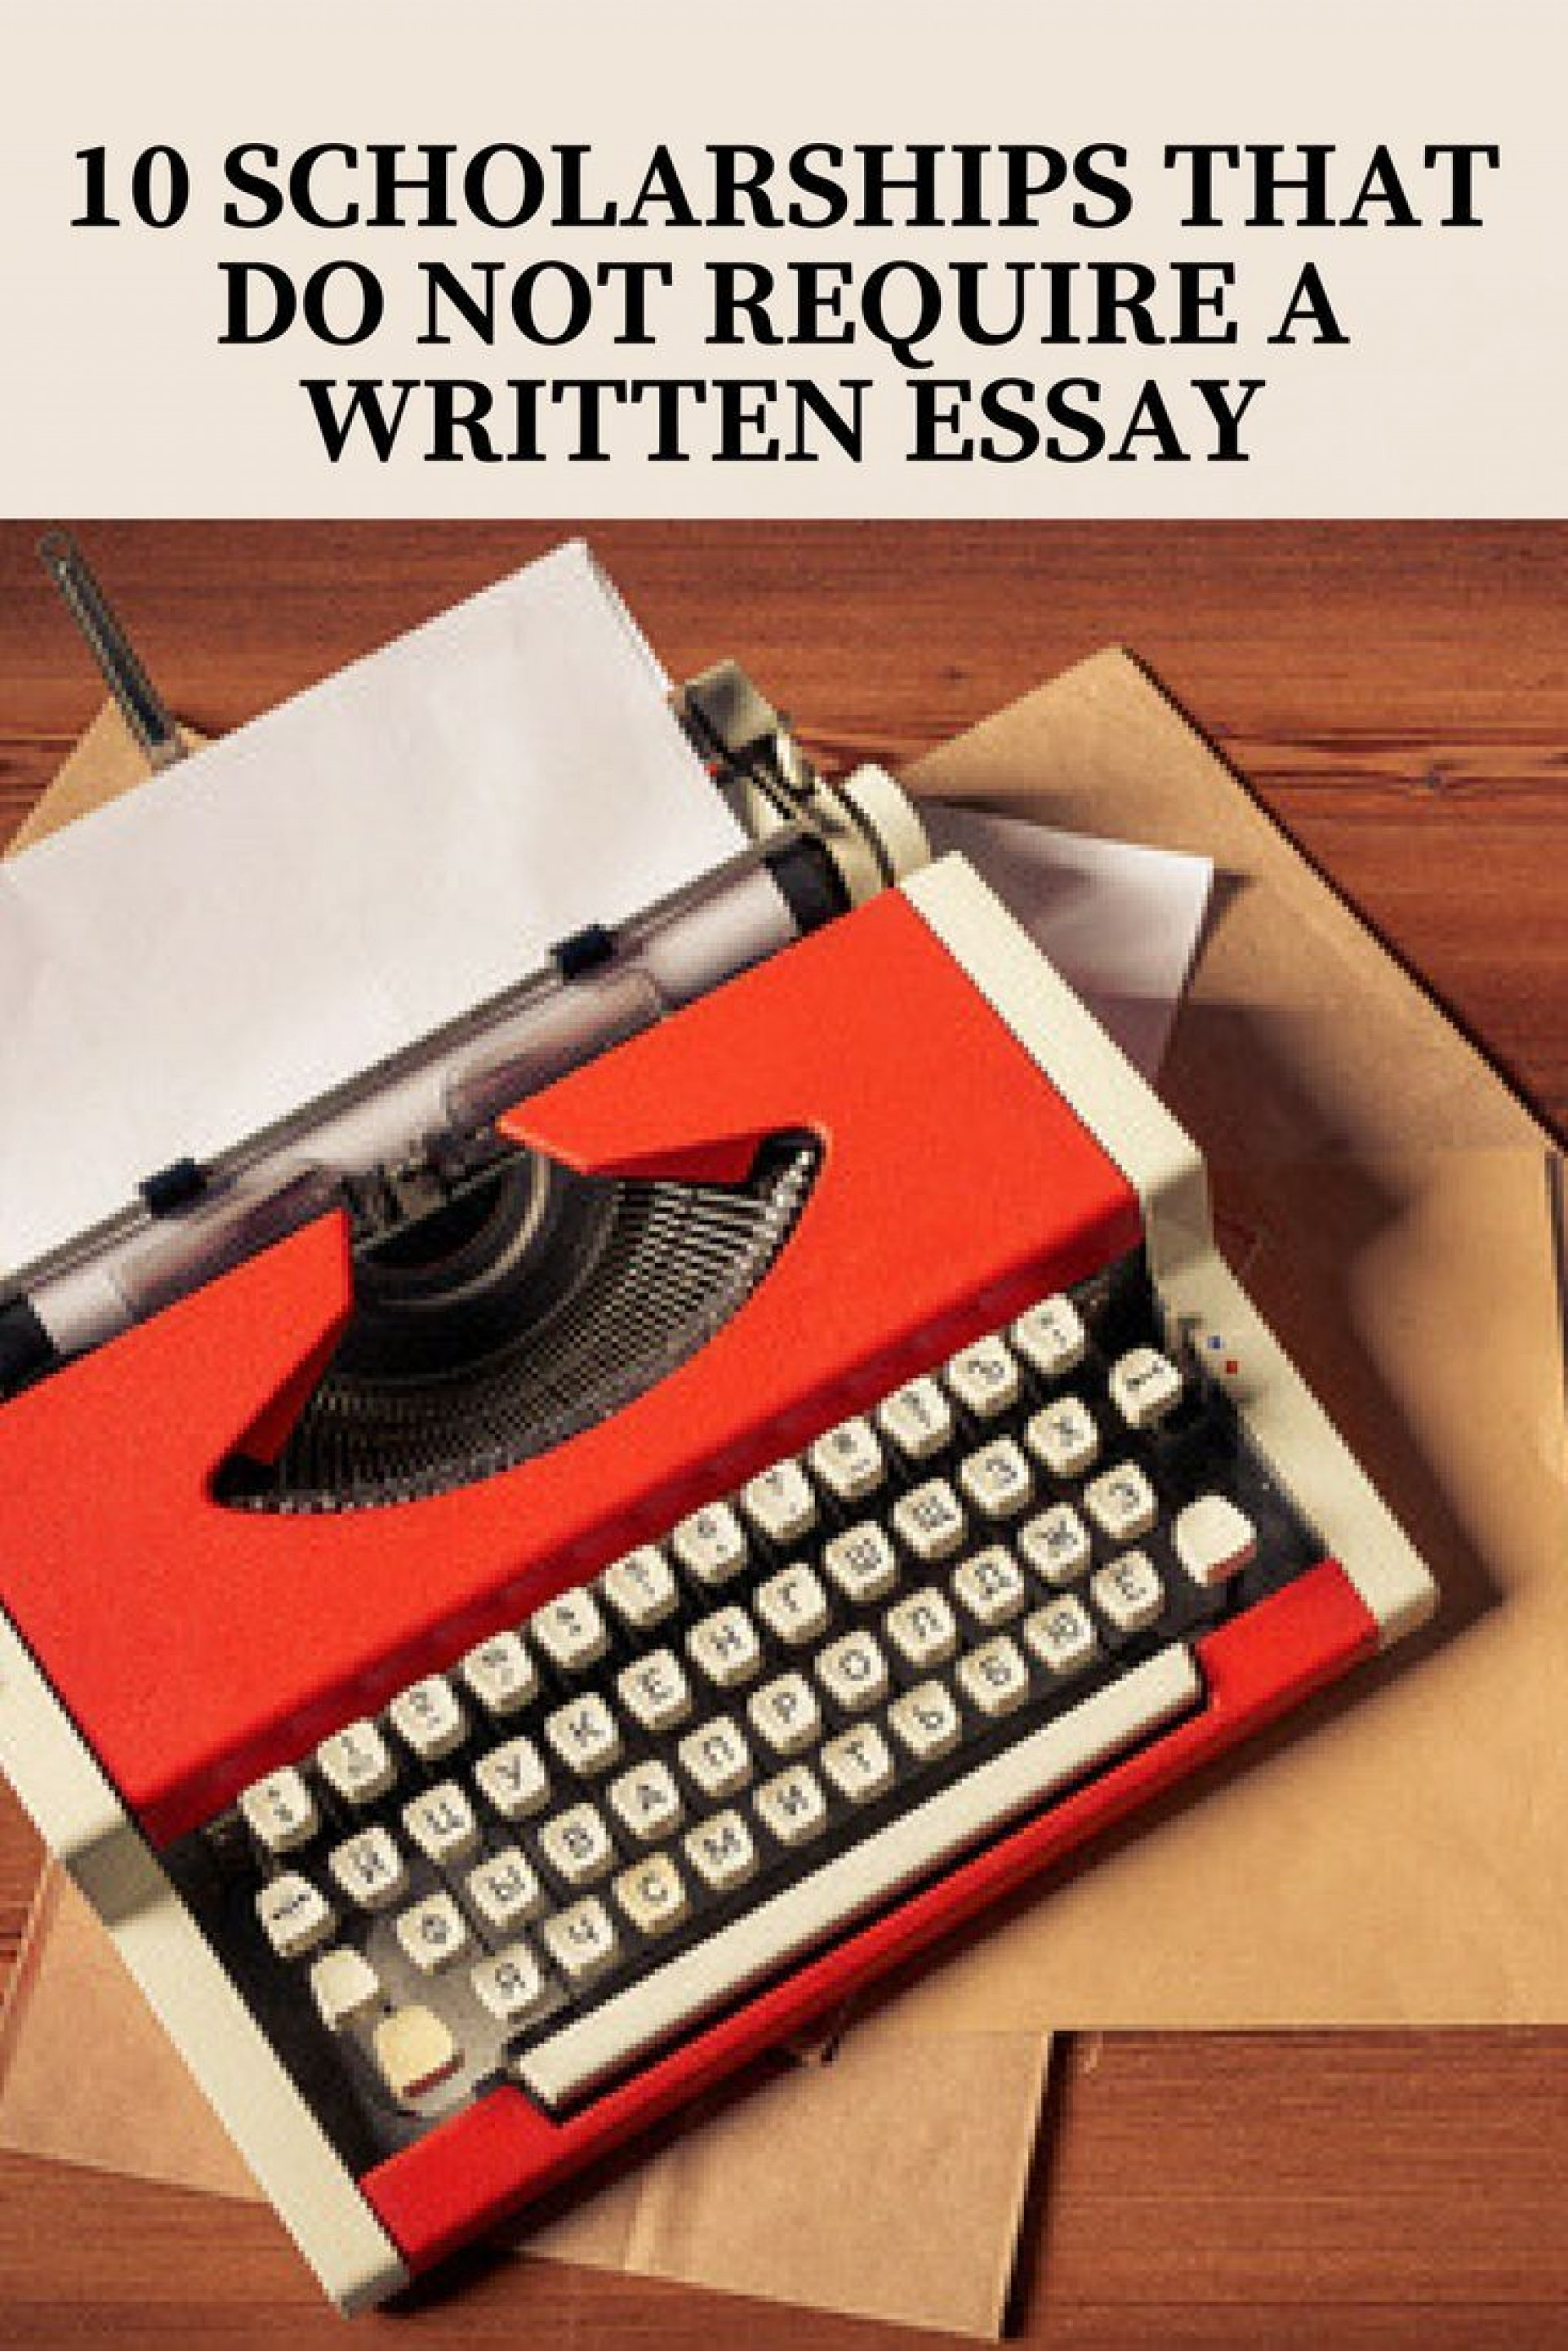 018 Scholarships That Don T Require Essays Essay Remarkable Are There Any Don't 2019 Canadian 1920